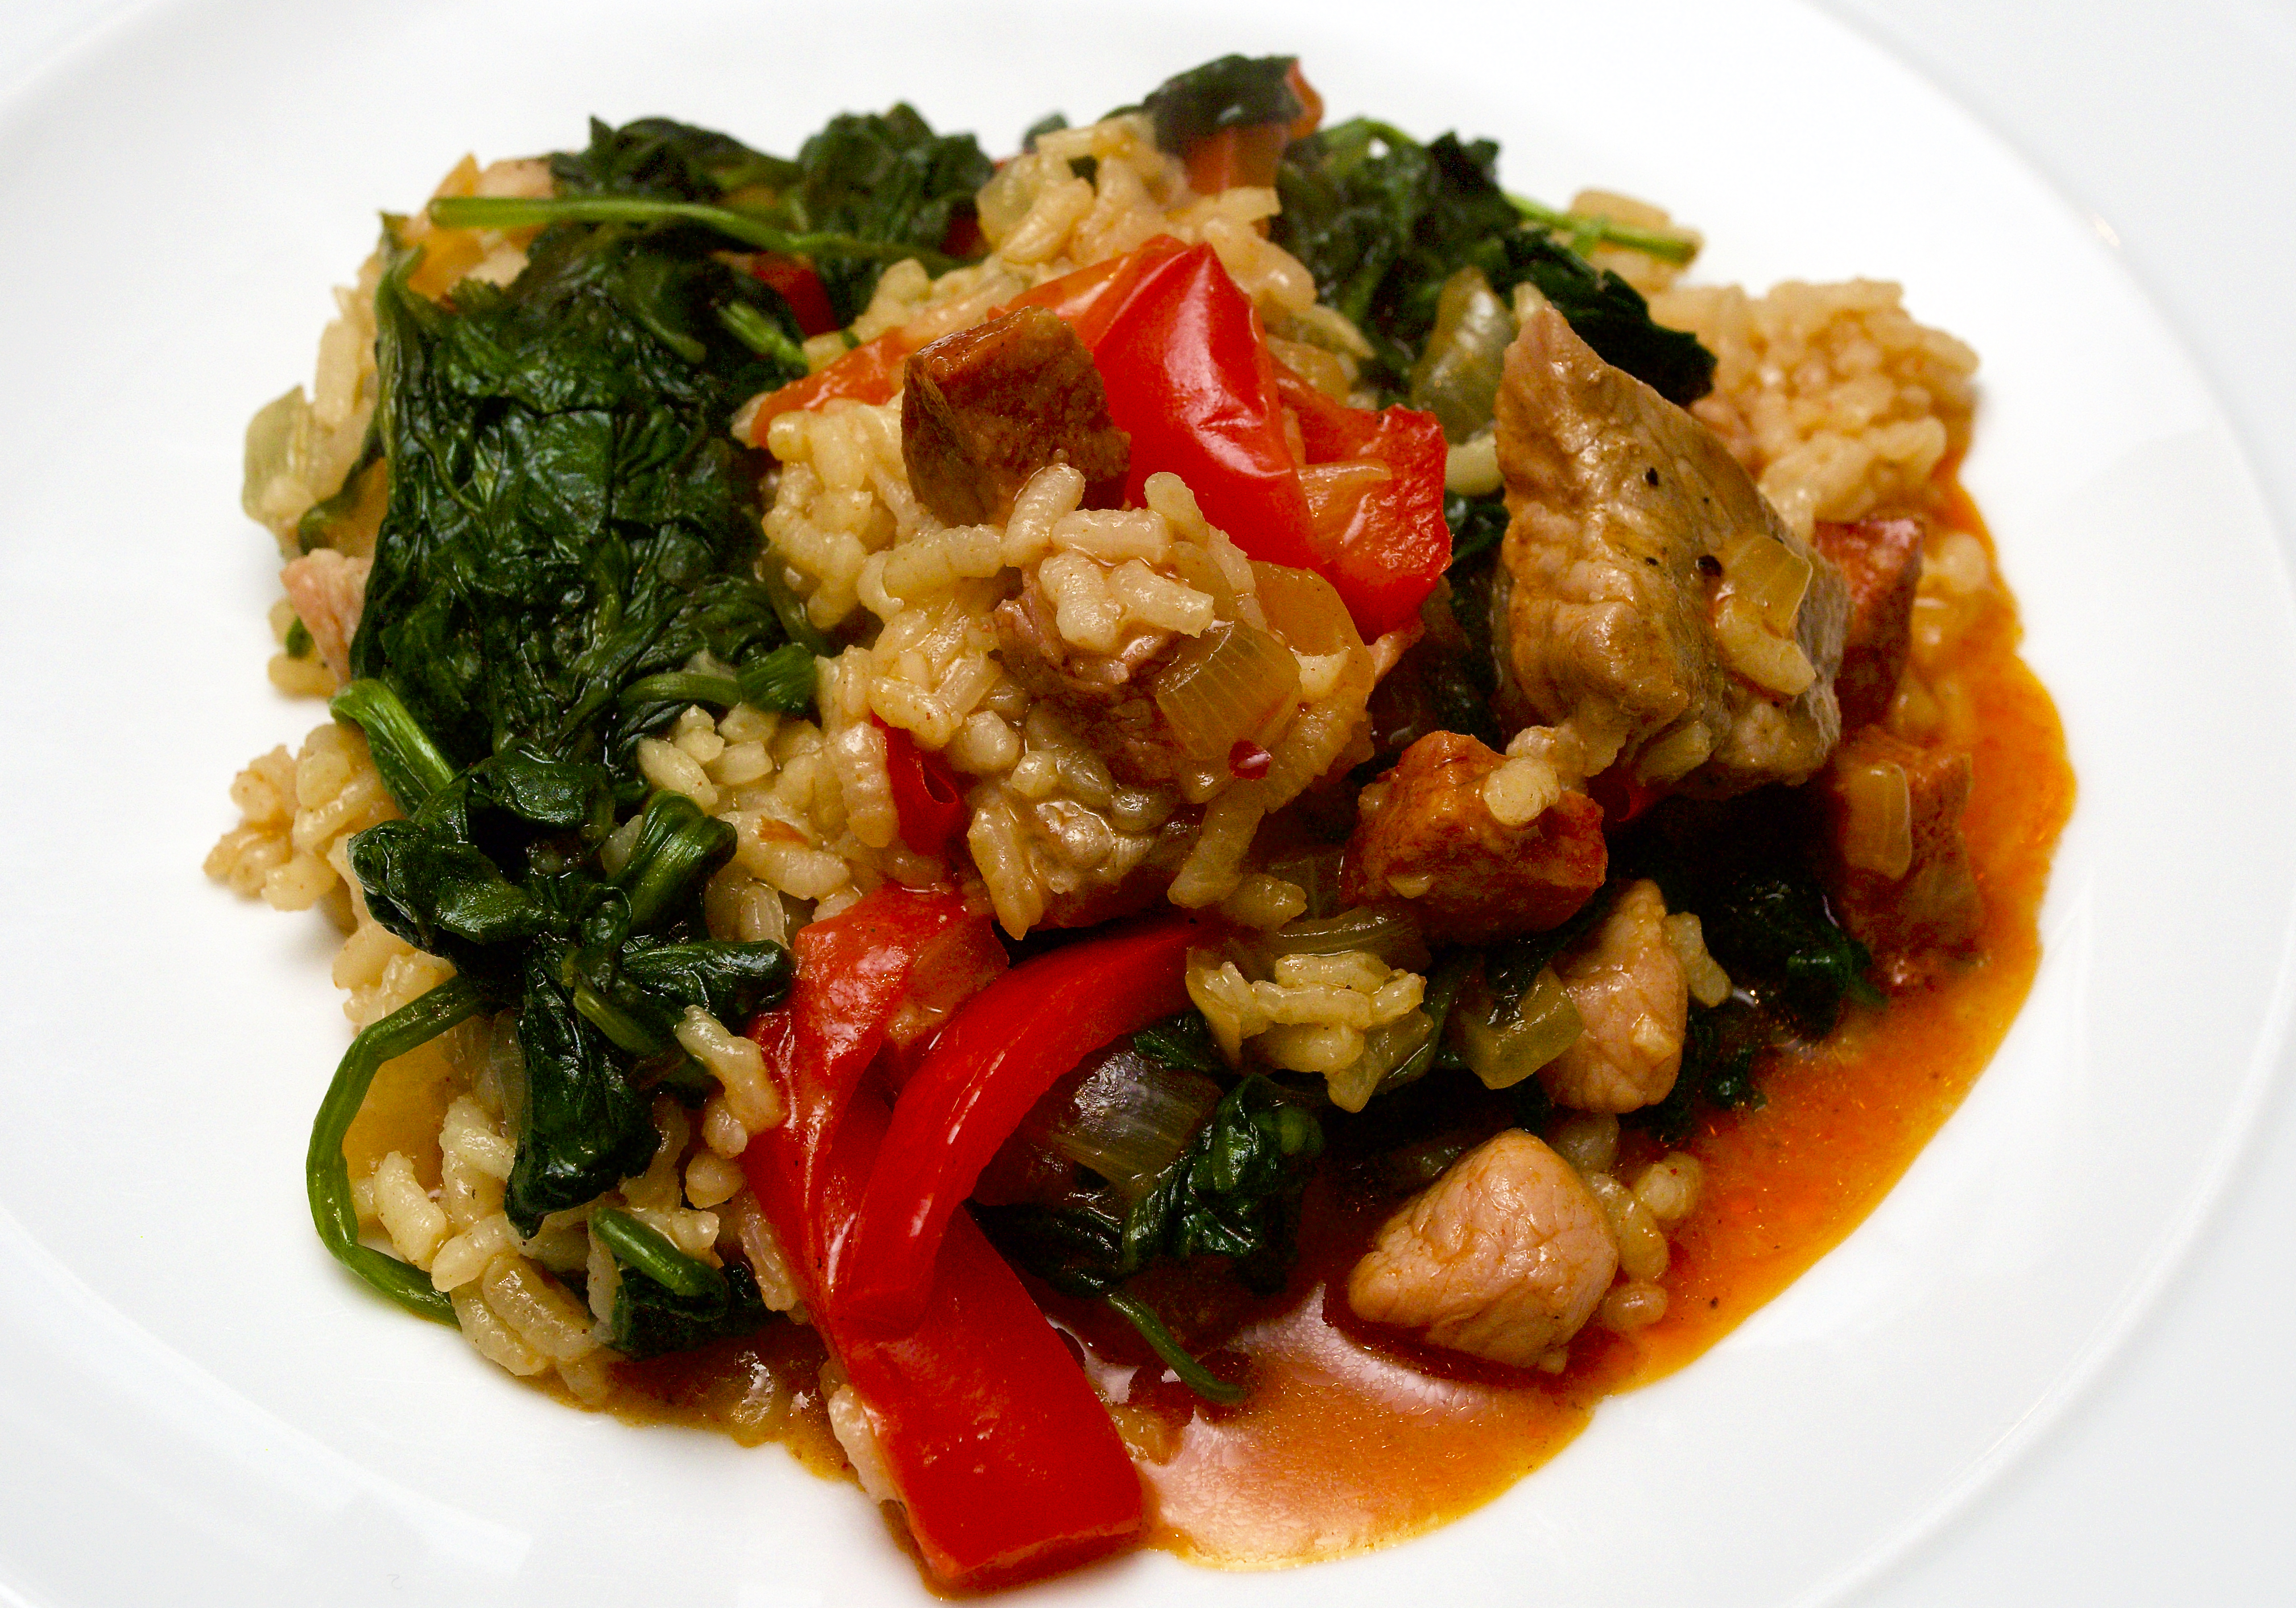 Spanish rice with pork & spinach